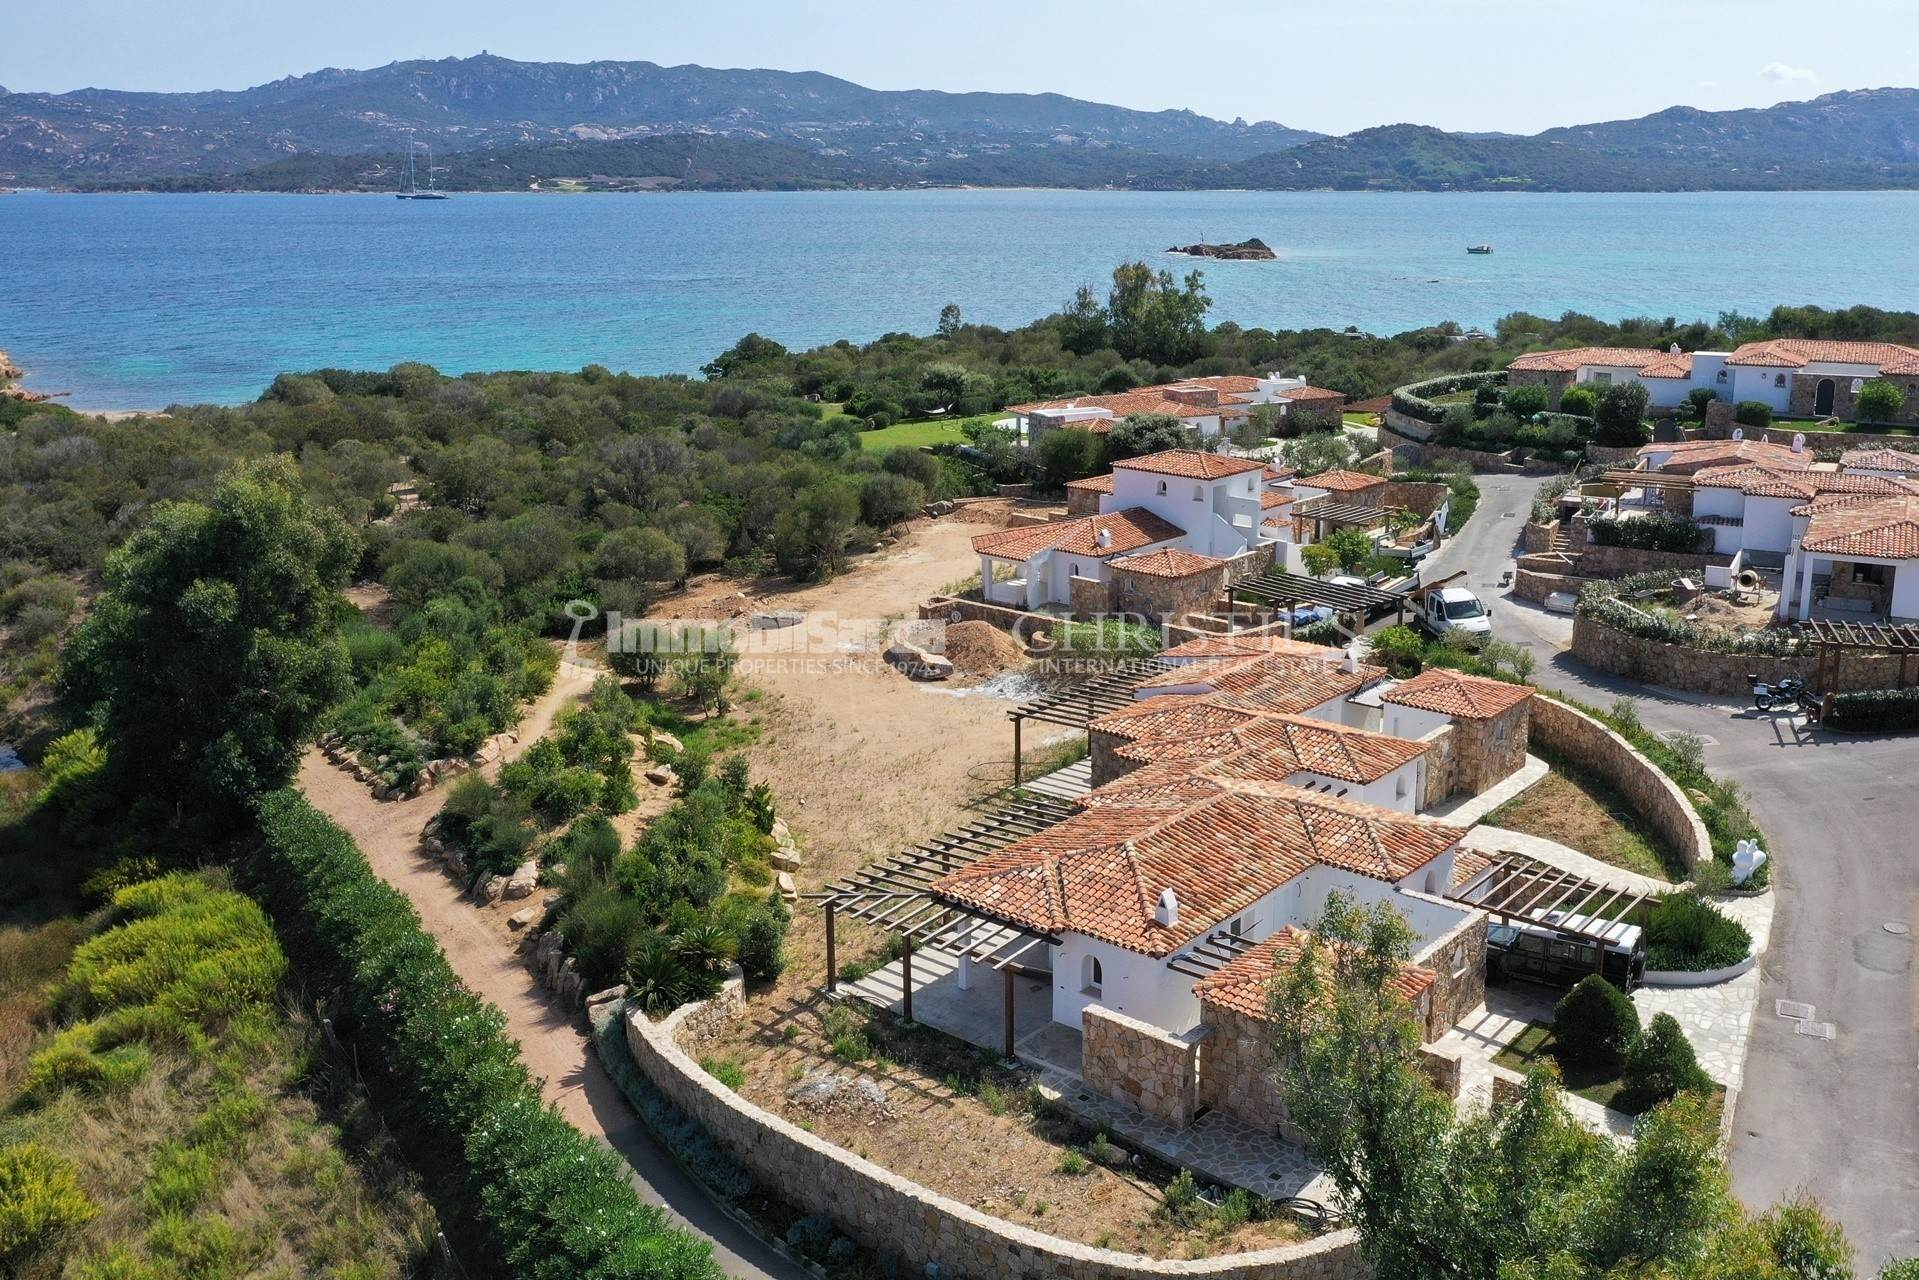 別墅 / 联排别墅 為 出售 在 Detached Beachfront Villa Borgo Harenae Costa Smeralda, Olbia Tempio,07021 義大利